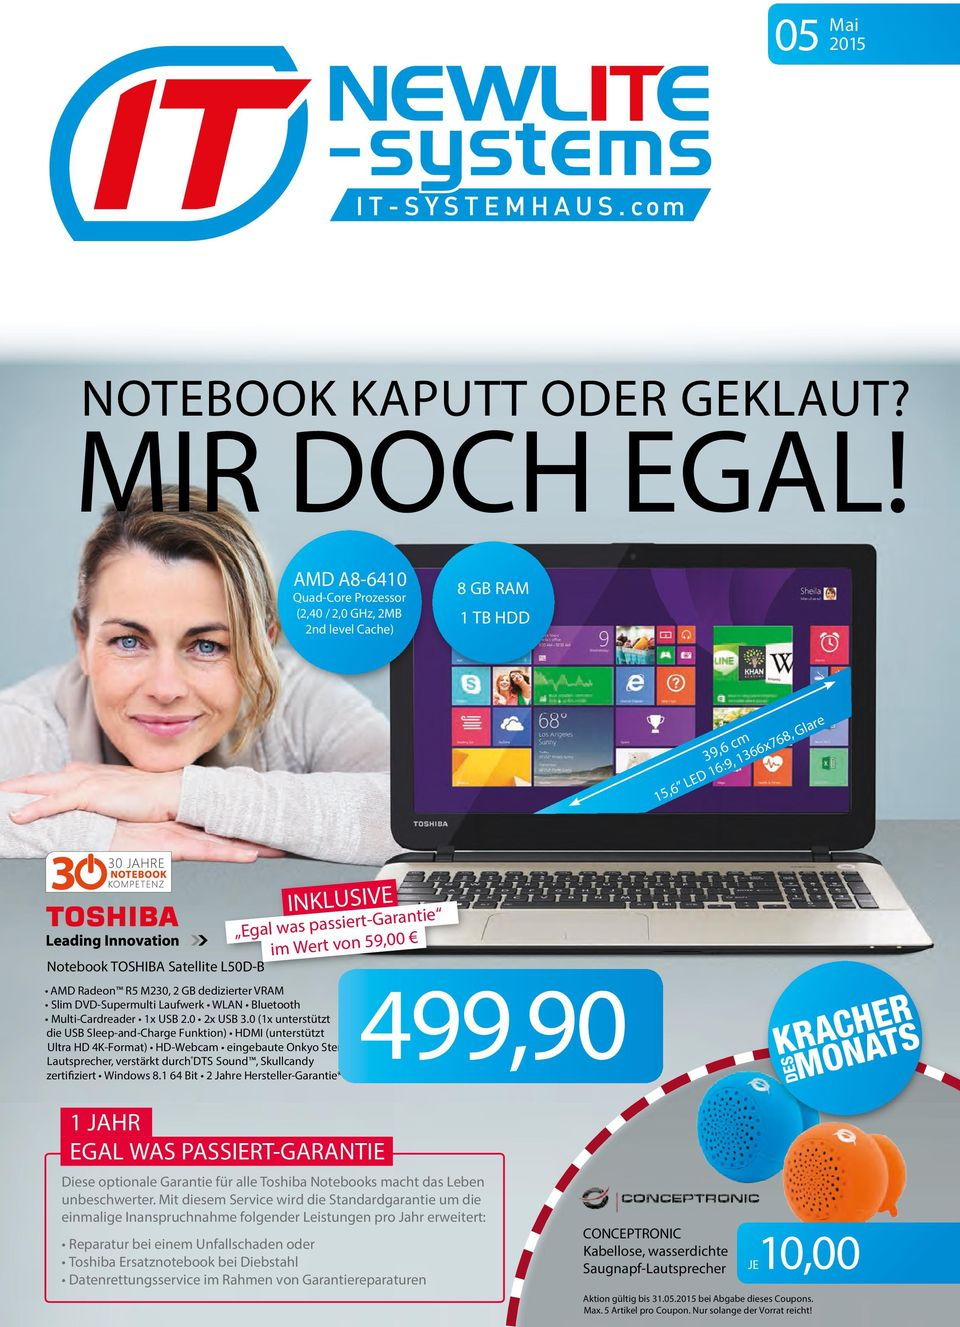 Satellite L50D-B AMD Radeon R5 M230, 2 GB dedizierter VRAM Slim DVD-Supermulti Laufwerk WLAN Bluetooth Multi-Cardreader 1x USB 2.0 2x USB 3.